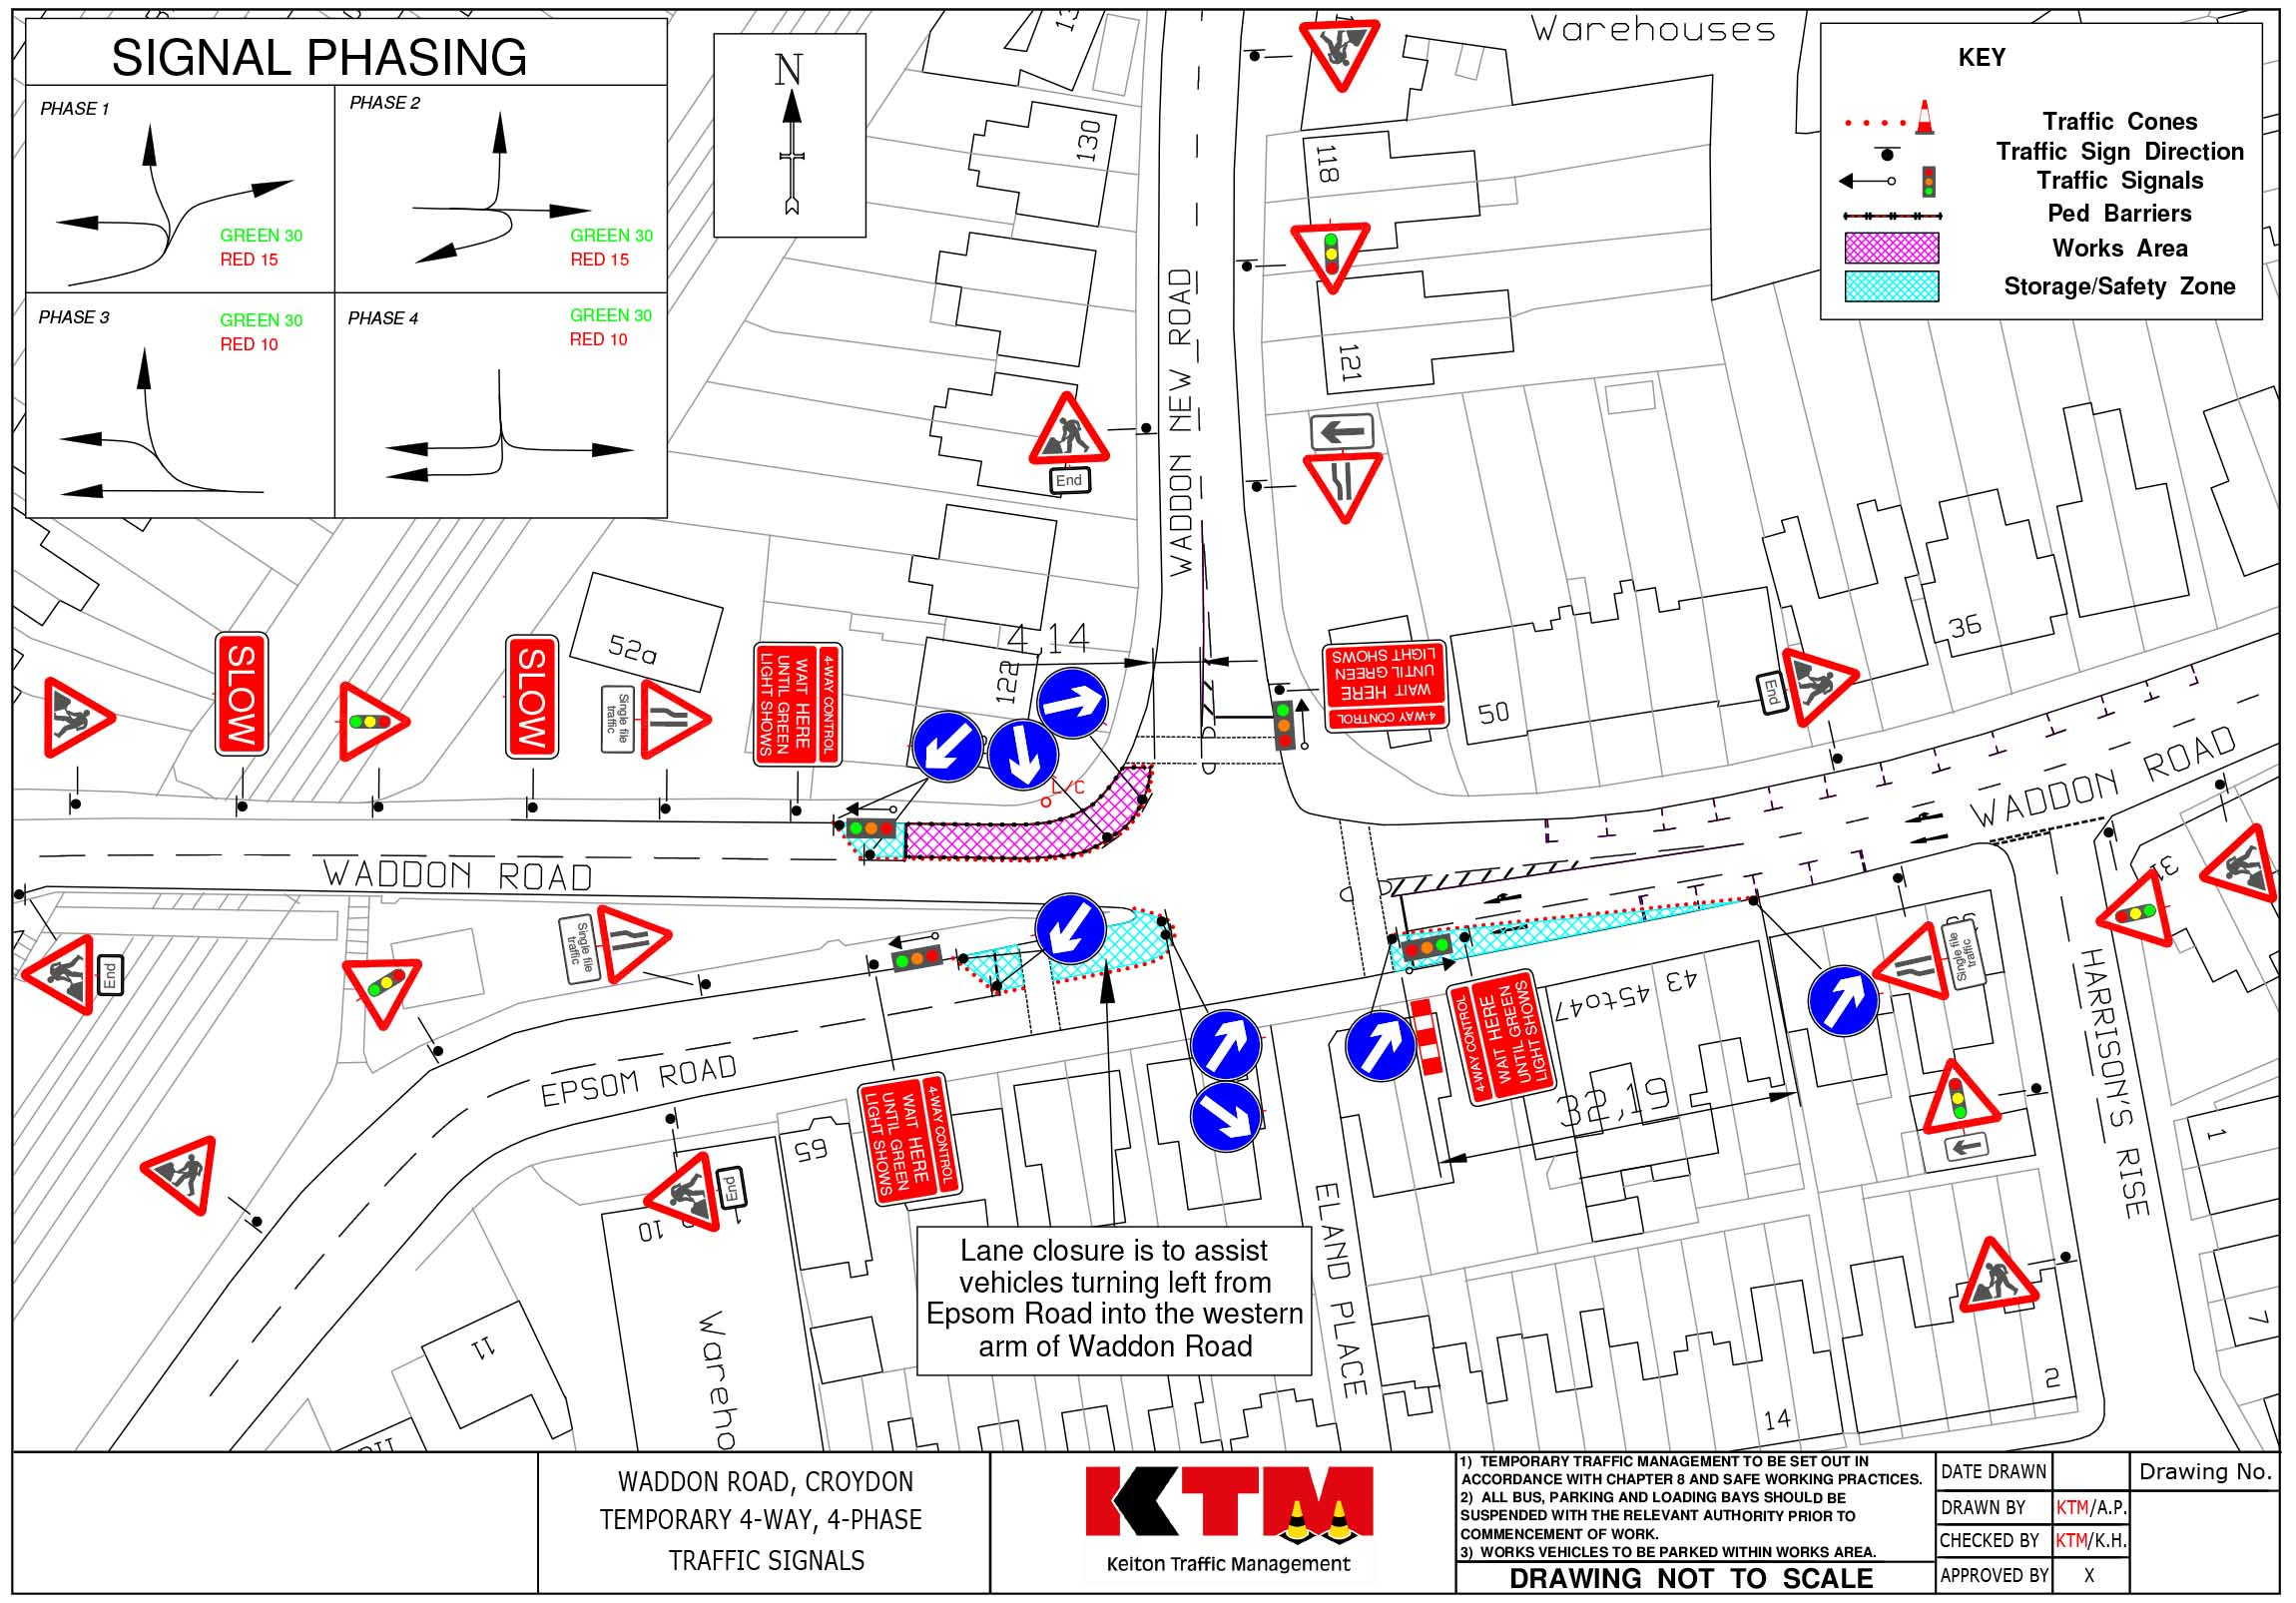 2300x1606 Ktm Keiton Traffic Management Drawings Traffic Management